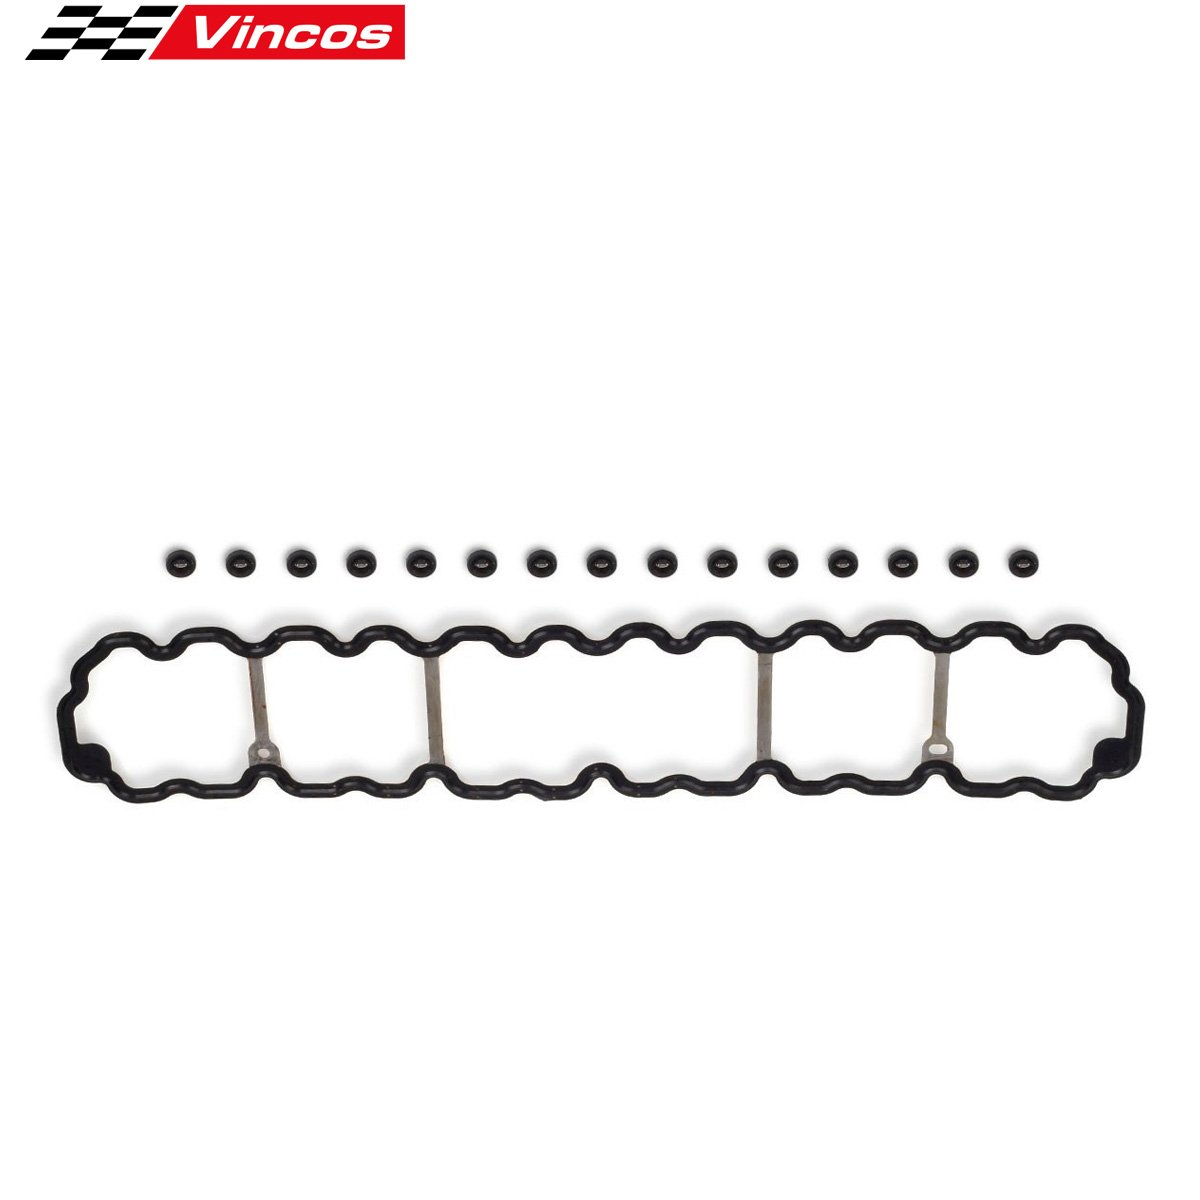 Vincos Engine Cylinder Valve Cover Gasket Replacement For 96-01 Jeep Cherokee Wrangler Grand 4.0L L6 VS50458R